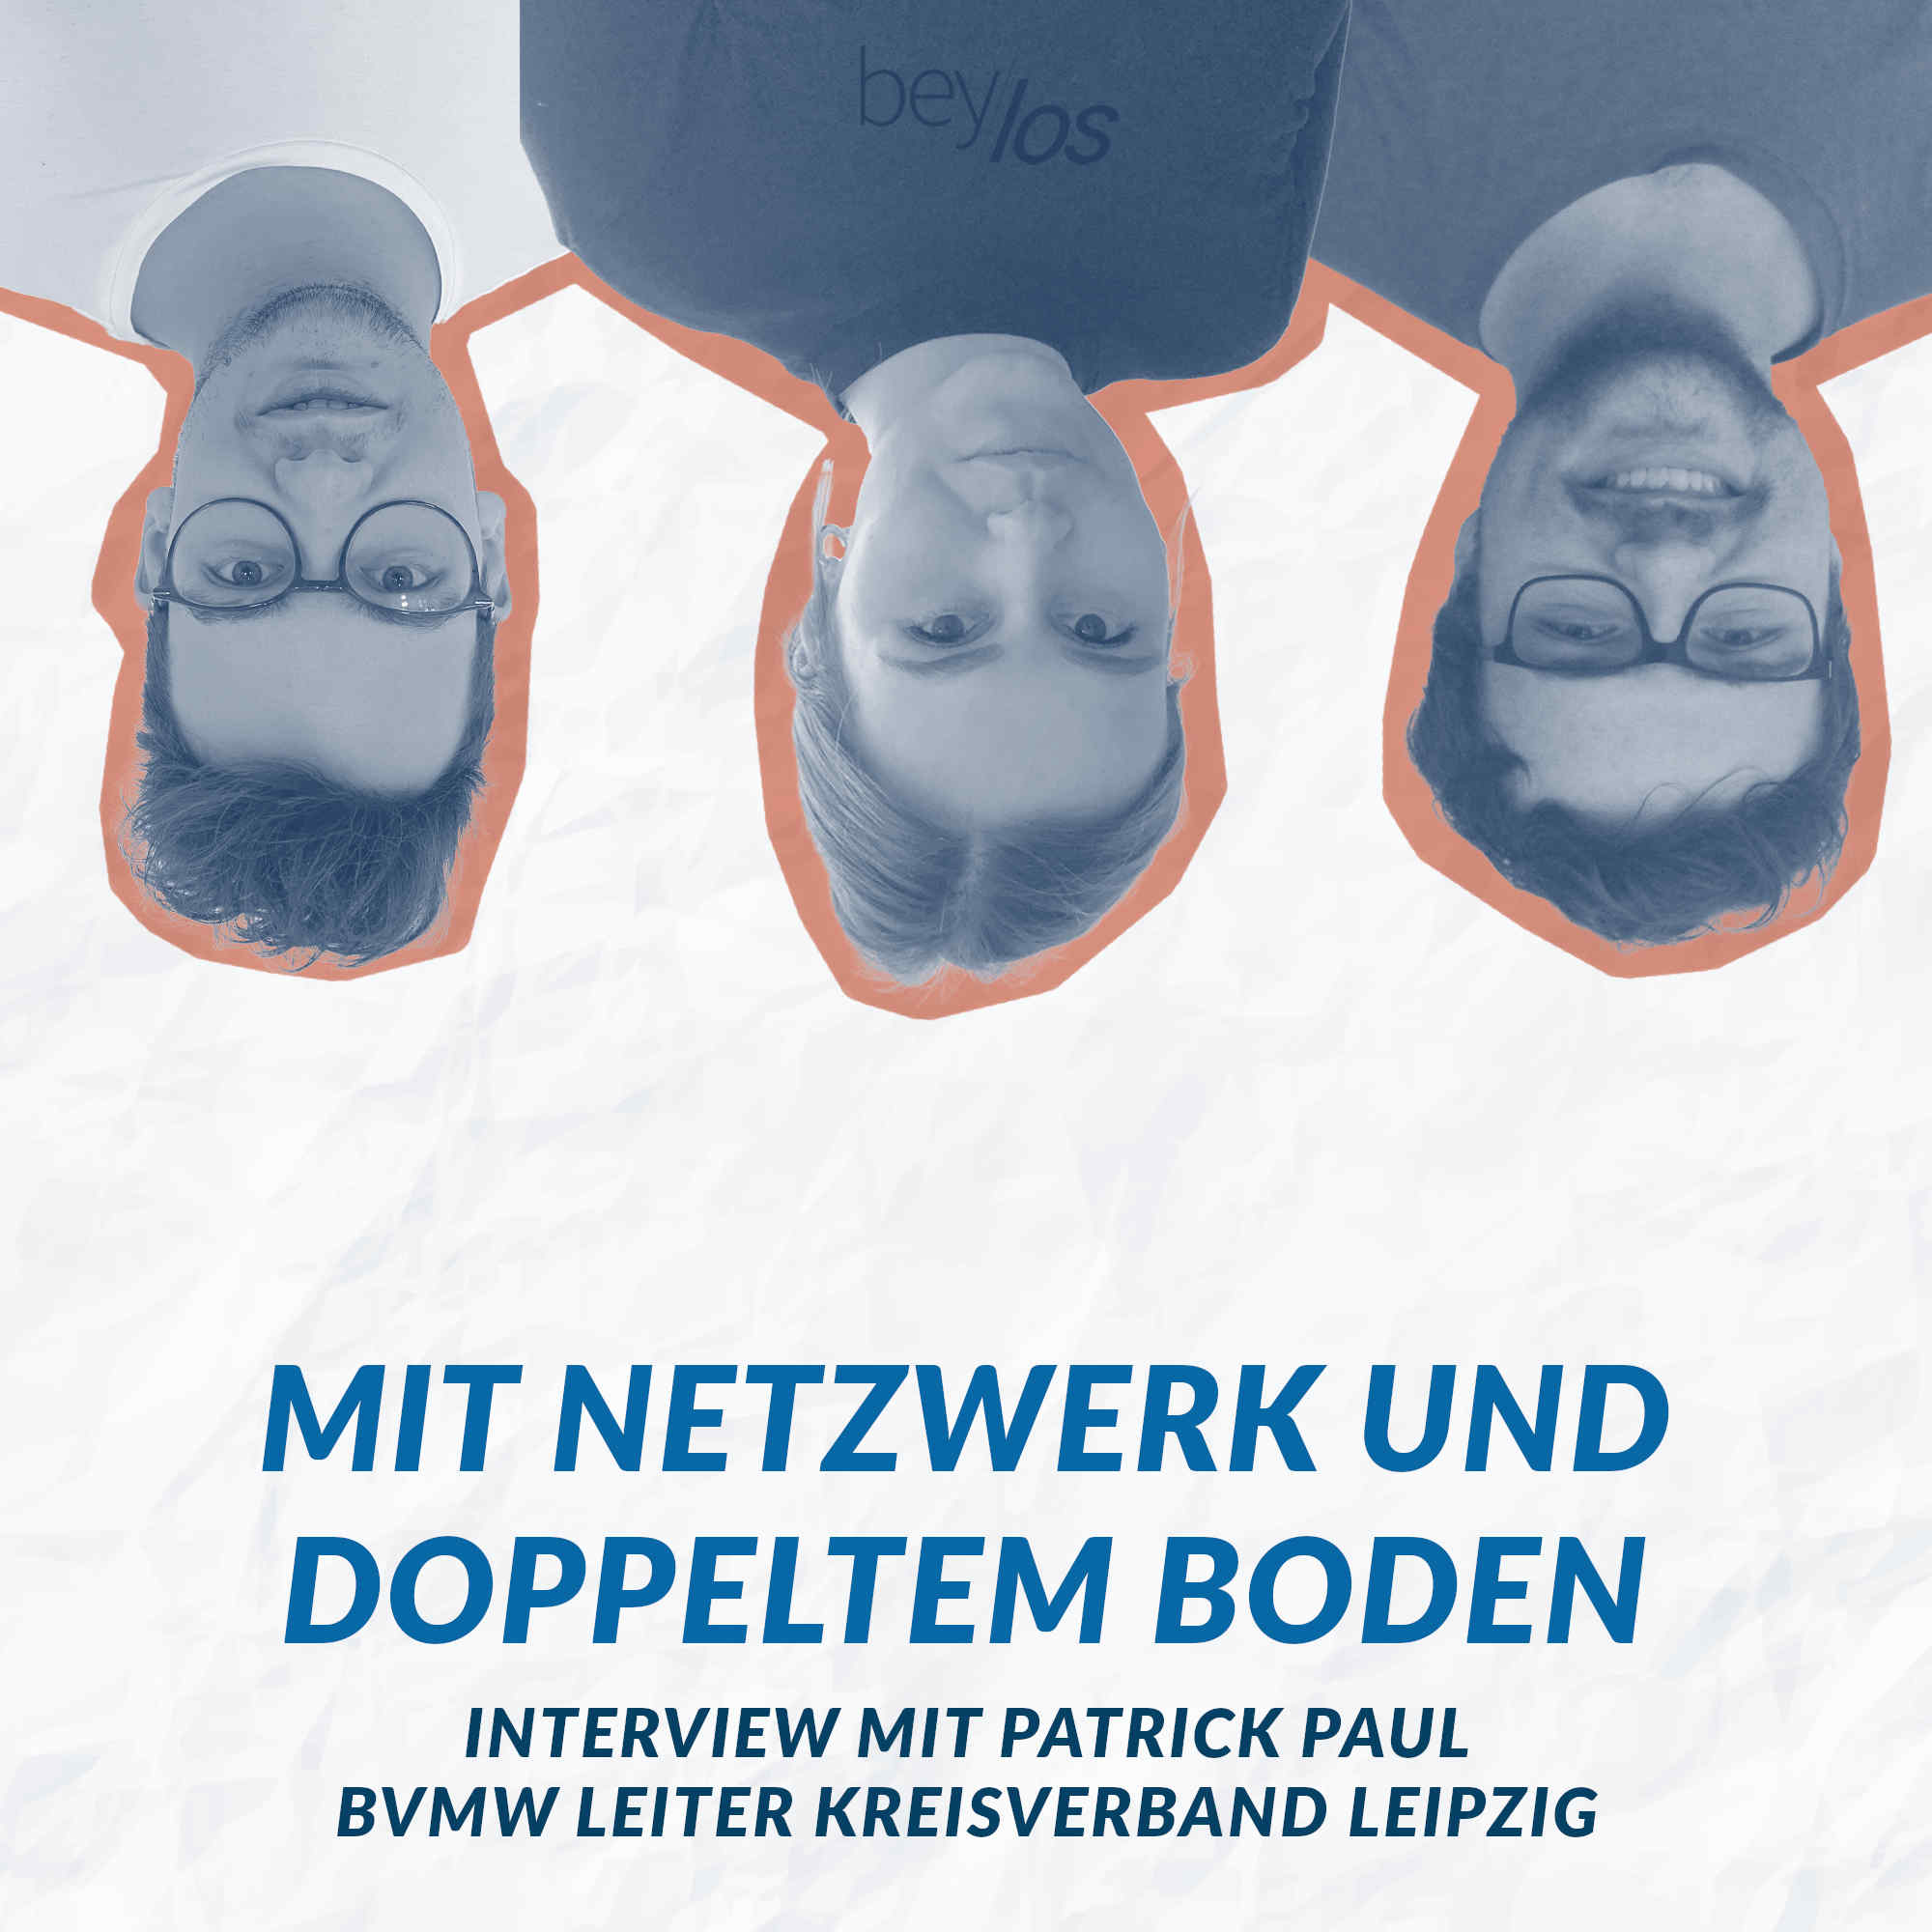 Interview mit Patrick Paul, BVMW Leiter Kreisverband Leipzig